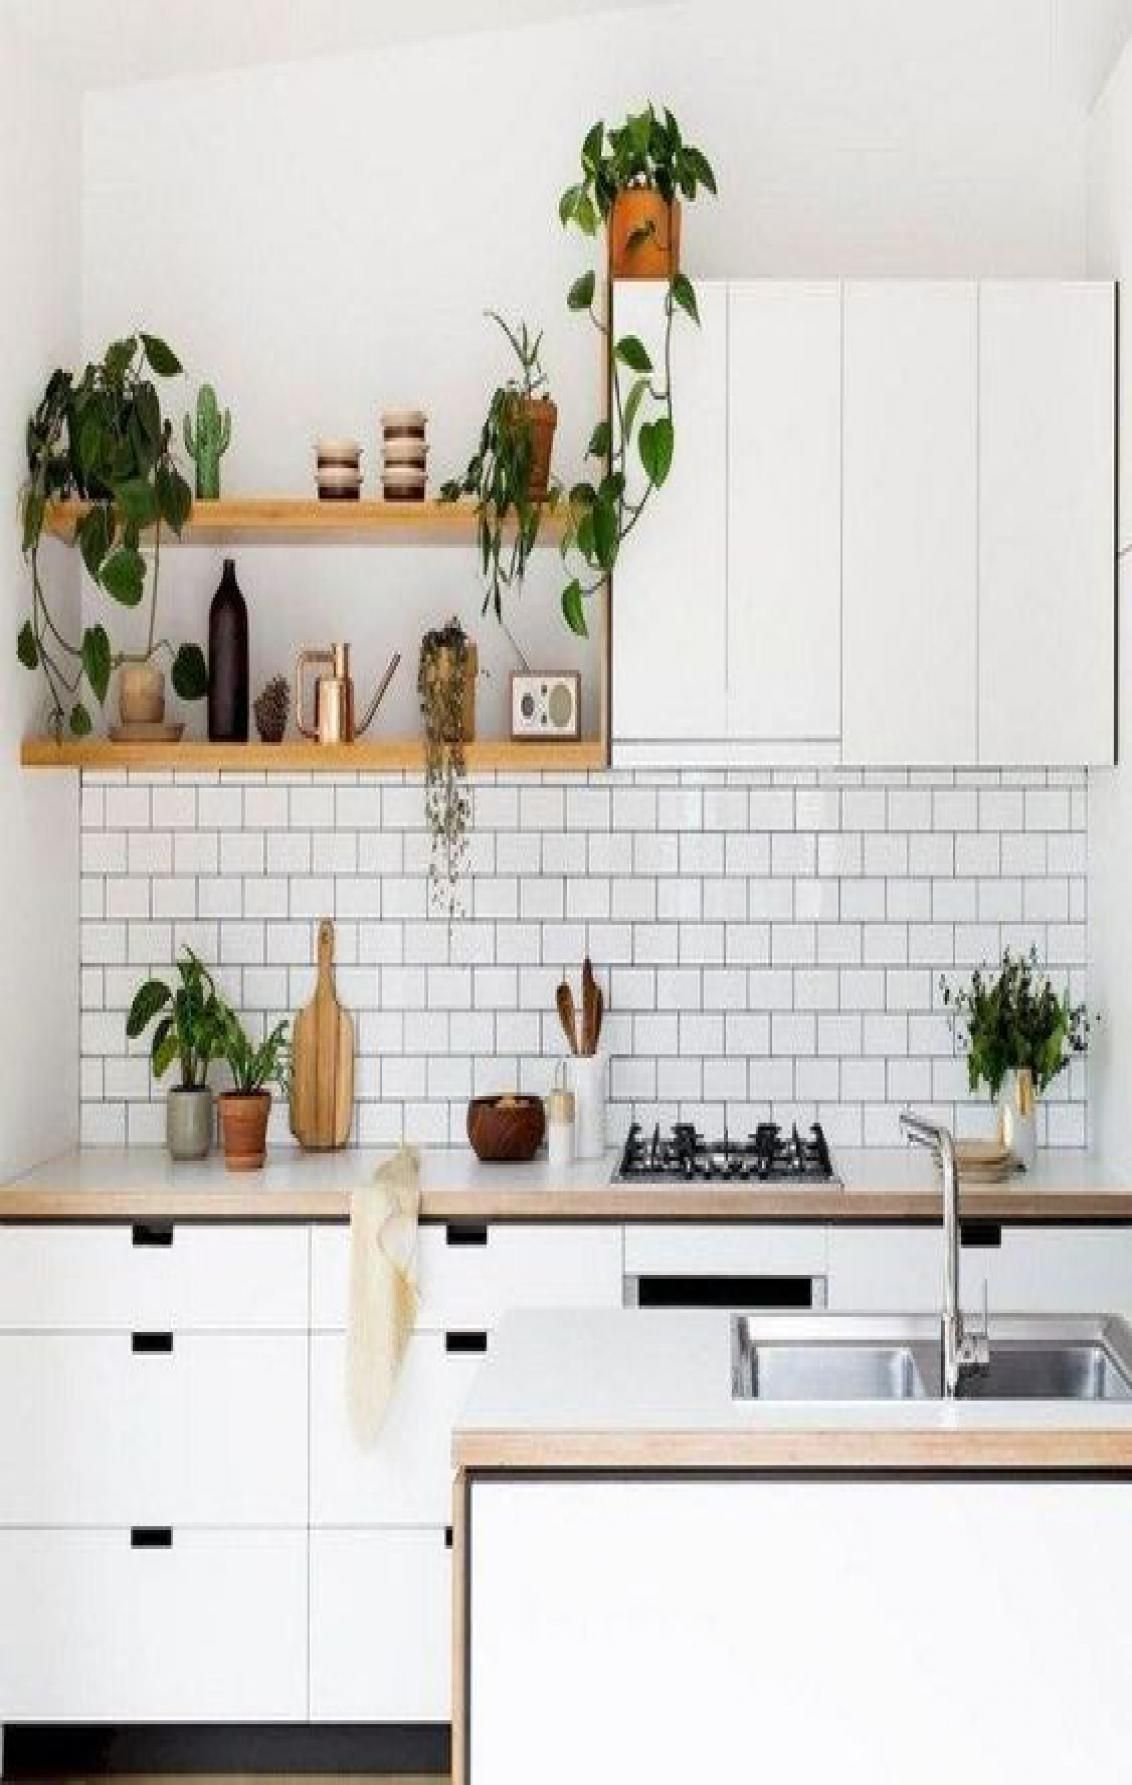 46 Chic Modern Farmhouse Kitchen Decor Ideas In 2020 Scandinavian Kitchen Scandinavian Interior Kitchen Minimalist Kitchen Design